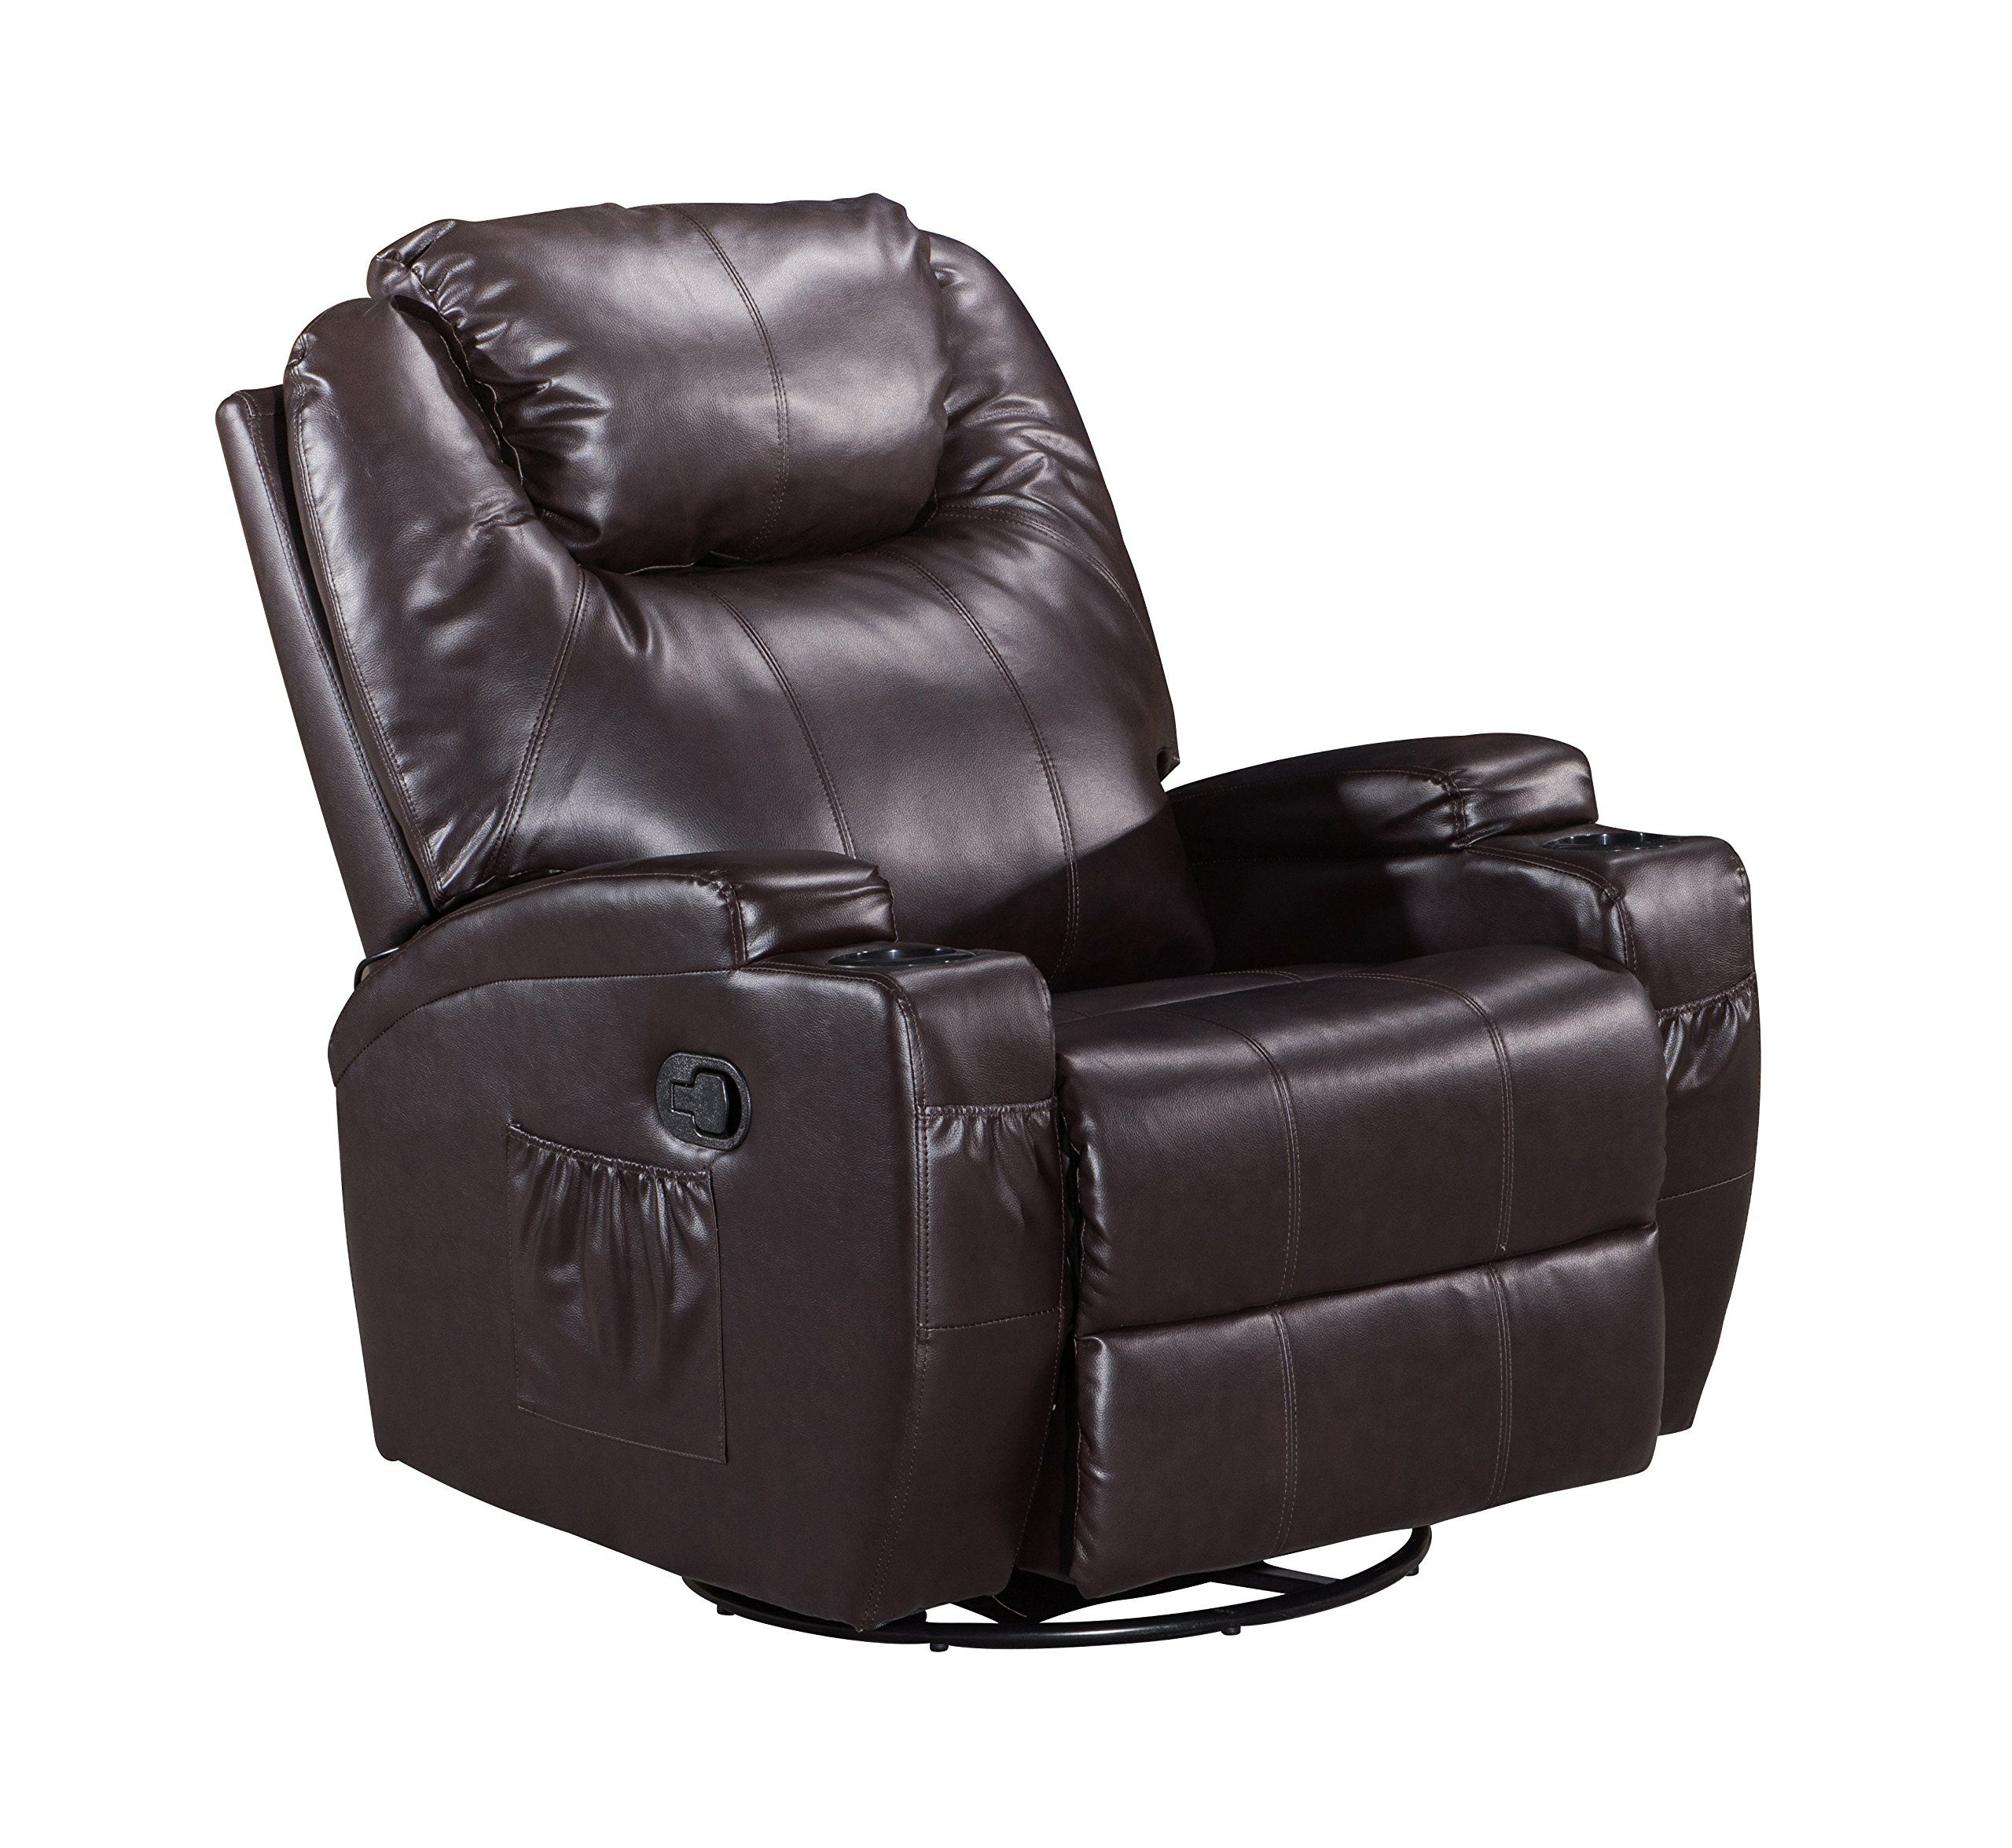 frivity massage rocker recliner classic and traditional heating vibrating bonded leather 360 degree swivel recliner - Leather Rocker Recliner